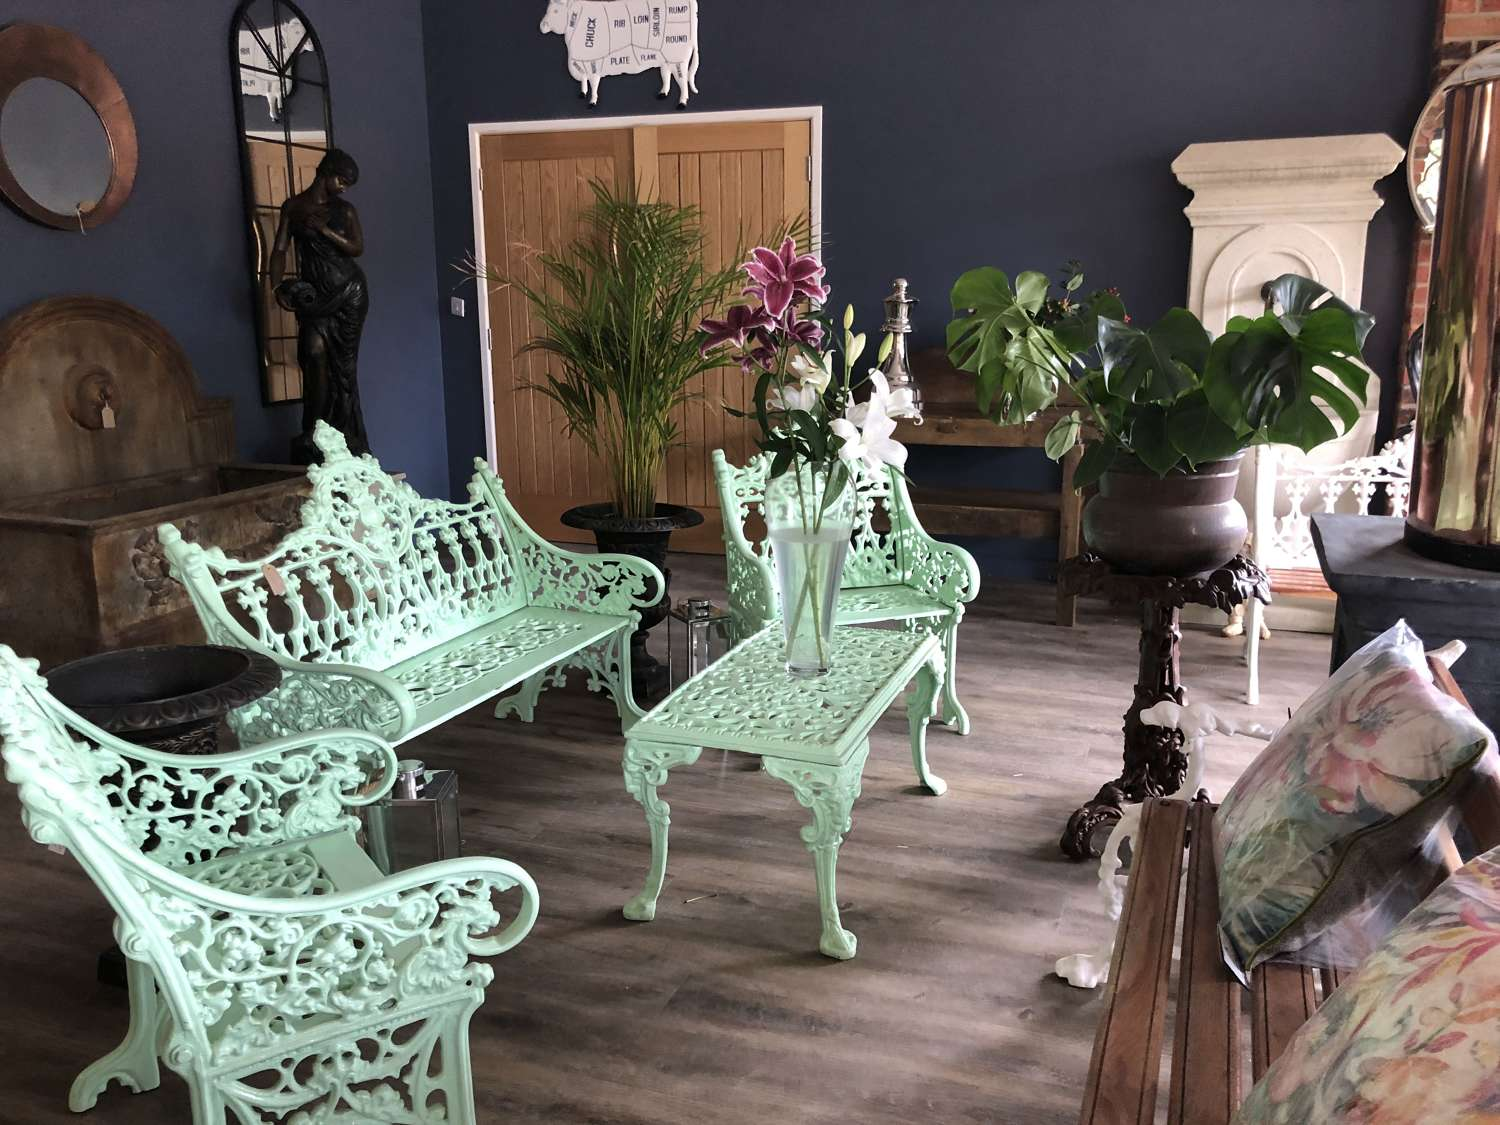 Cast Iron Four Piece Garden Furniture Set - Bench 2 Chairs & Table